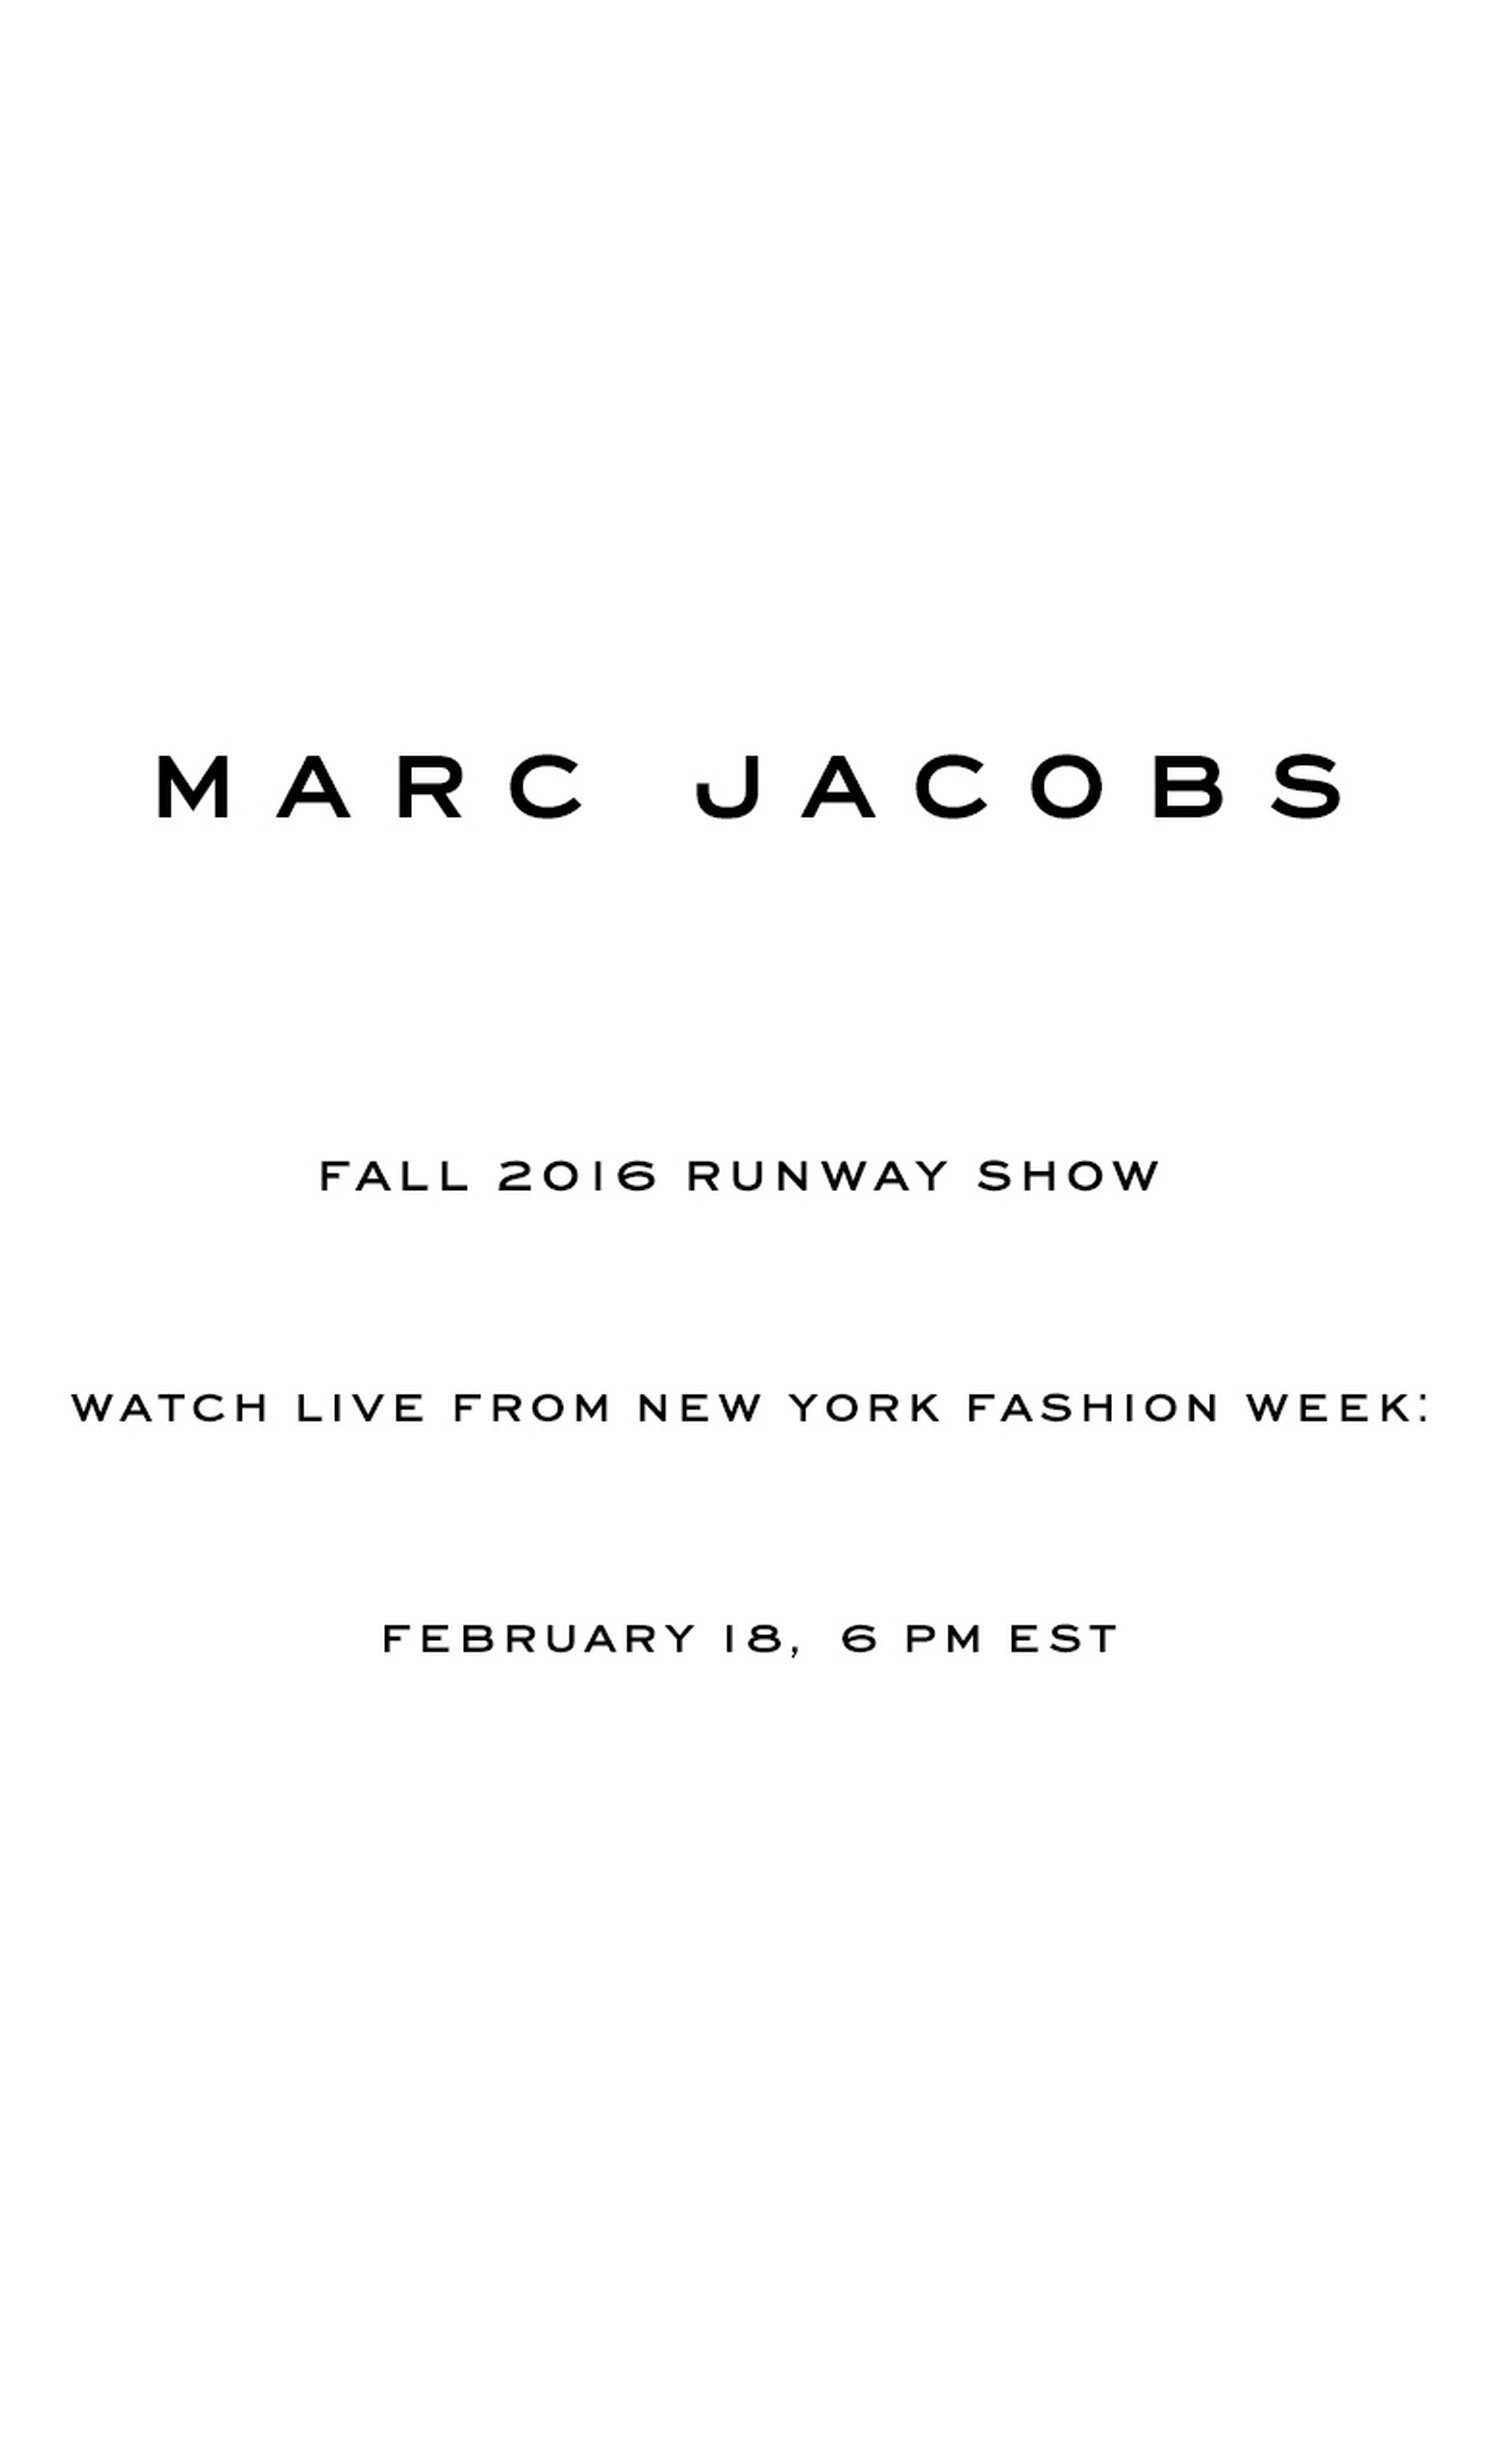 Marc Jacobs Fall 2016 Live from New York Fashion Week